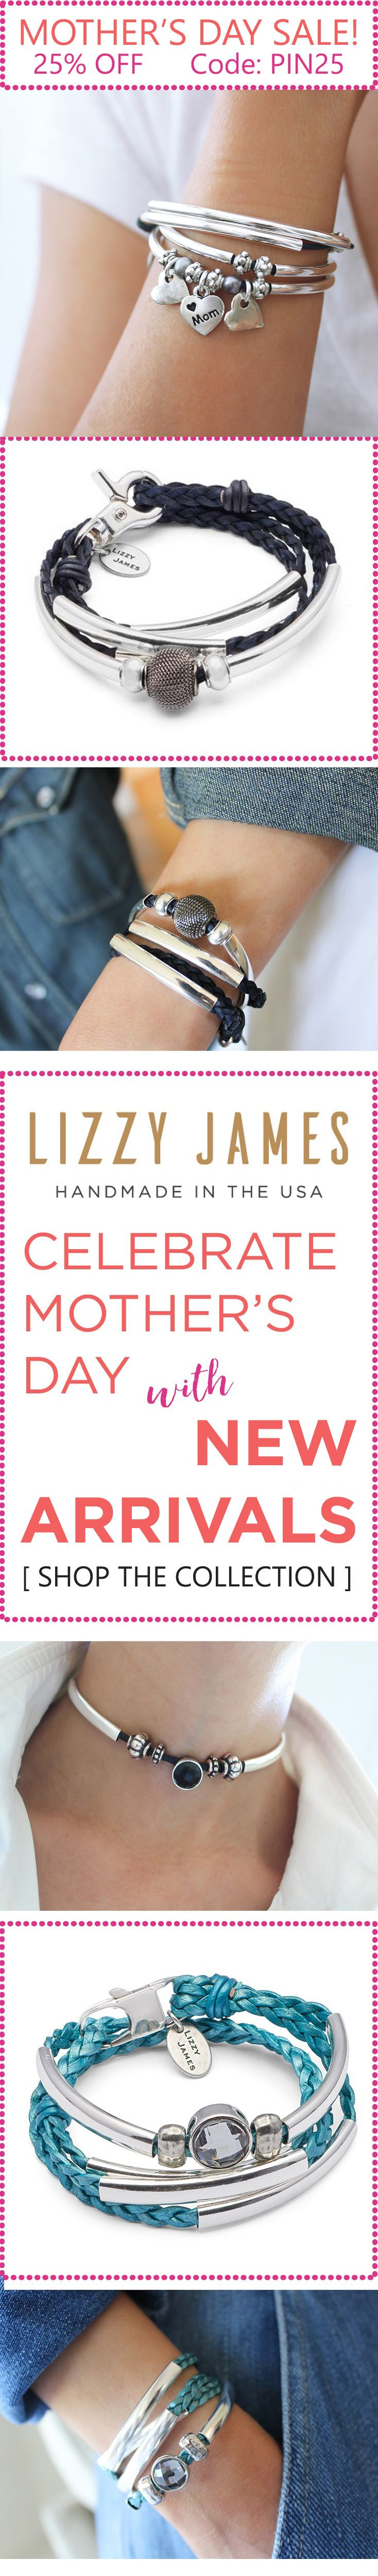 Lizzy James NEW Arrivals plus online exclusives just in time for Mother's Day! Get 25% OFF with CODE - PIN25 Plus Free Shipping during our Mother's Day Sale. Featuring NEW colored braided leather wrap bracelets, chokers, earrings and Sterling silver rings. Great Mothers Day gift ideas, handcrafted in the USA. #MadeInUSA